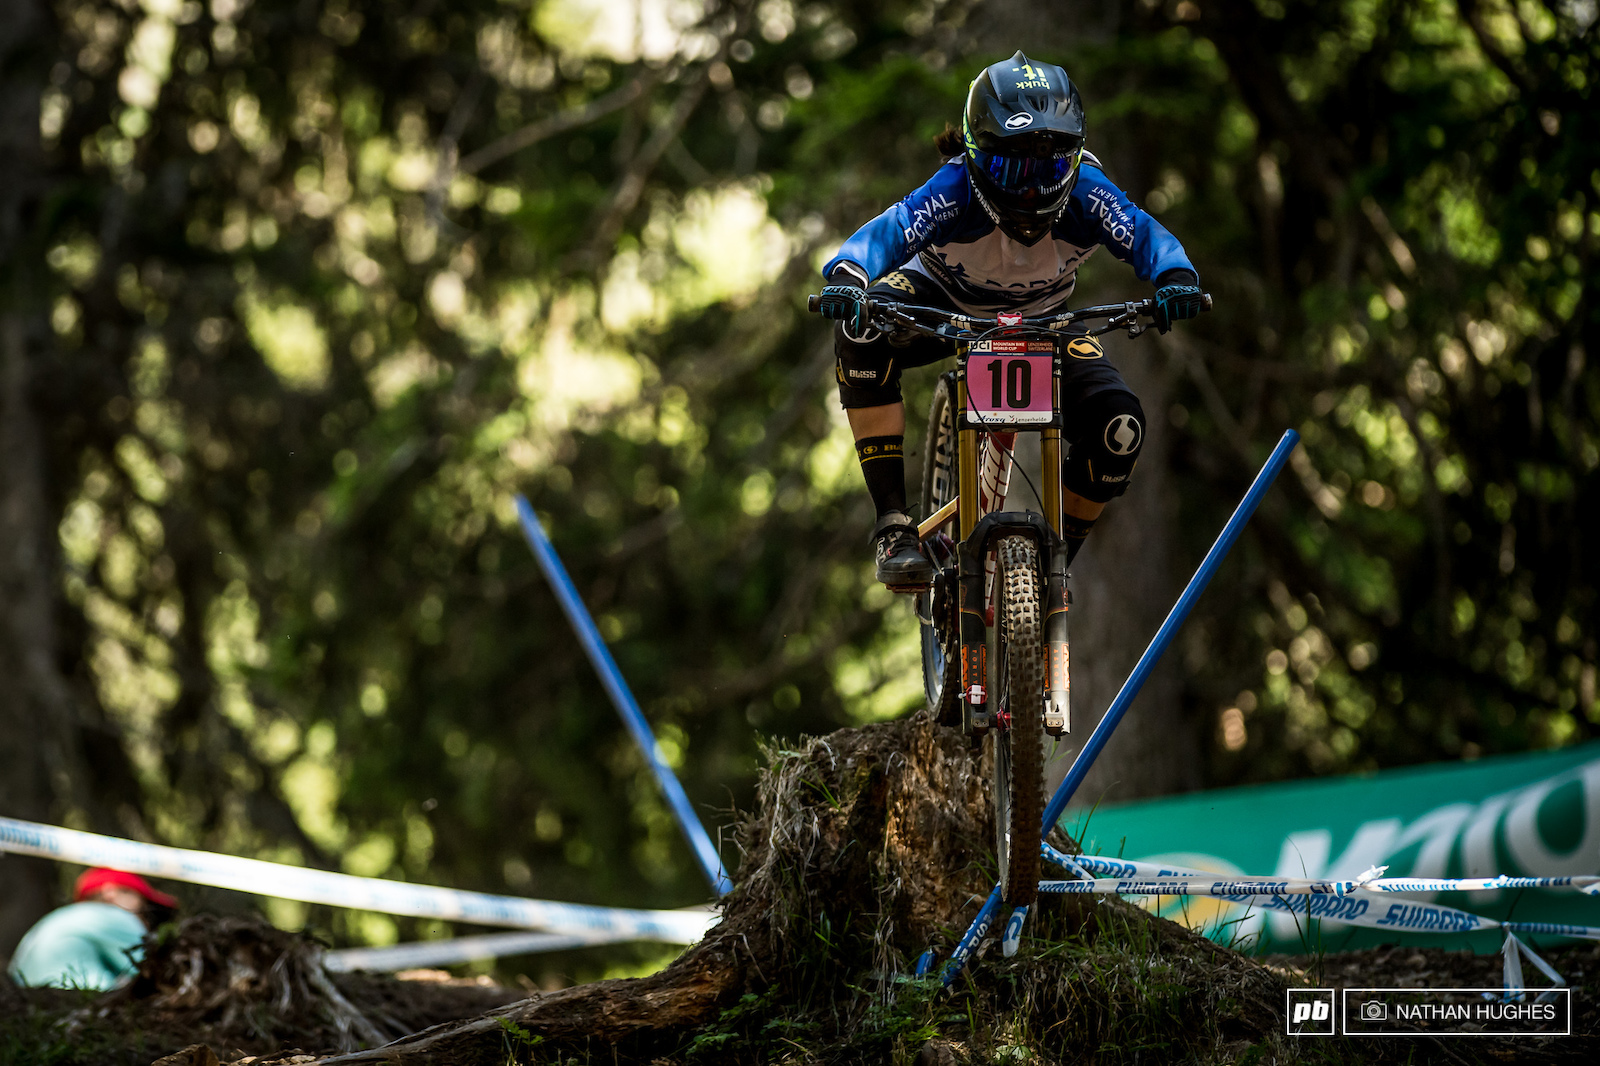 Salvador s fastest export Maria Salazar hucking the stump jump famously pioneered by Troy Brosnan back in 2015.